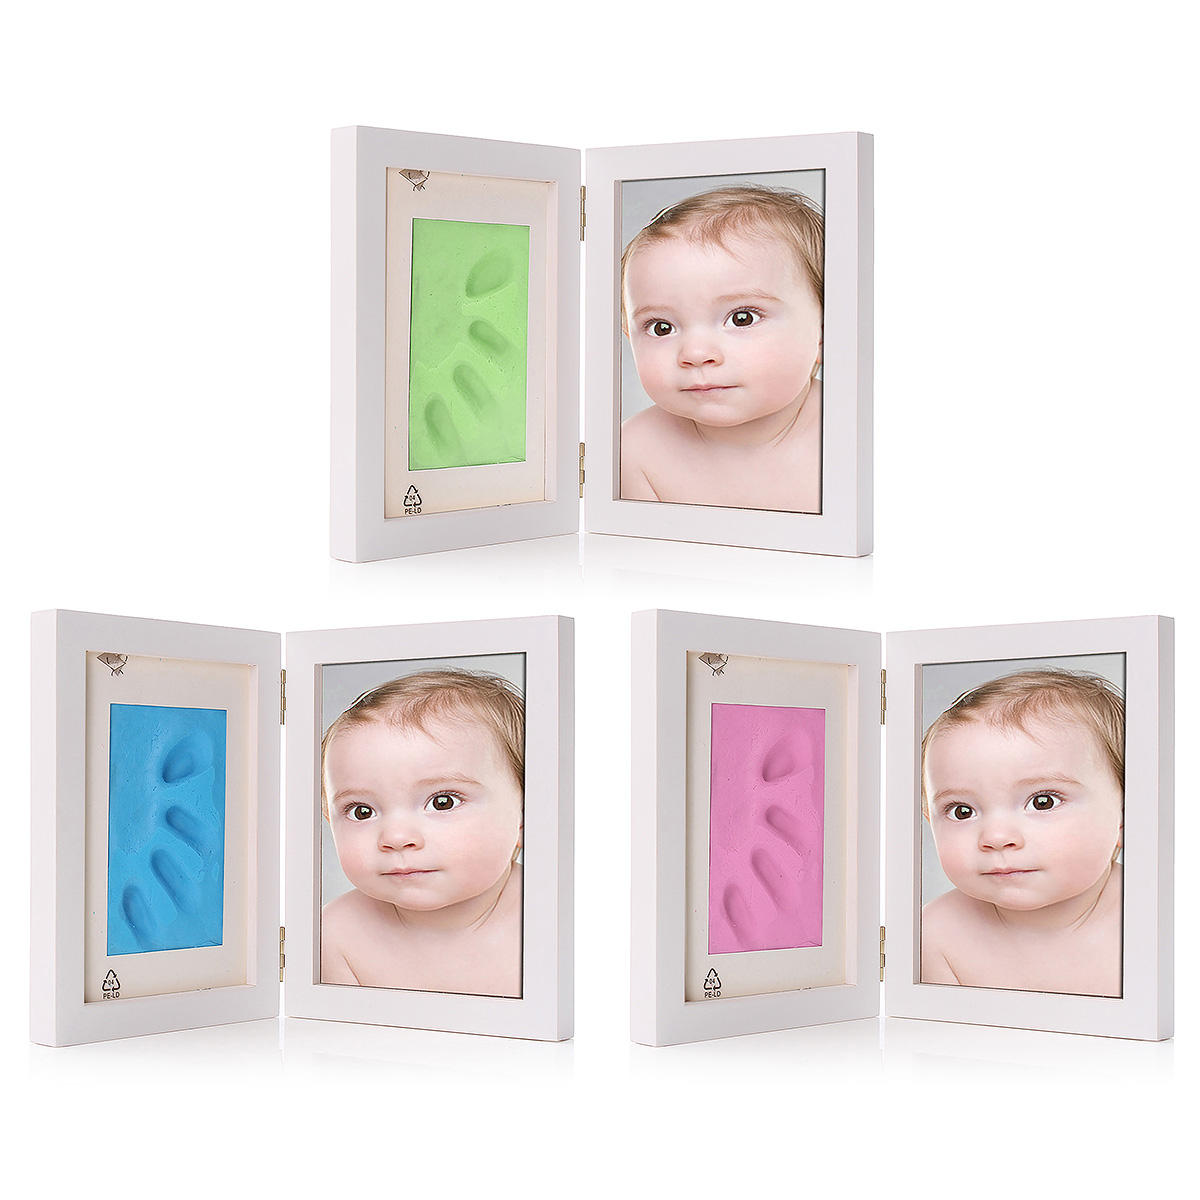 7 Inch New Born Baby Hnad Foot Print Clay Wood Photo Frame Stand Home Decor, Banggood  - buy with discount